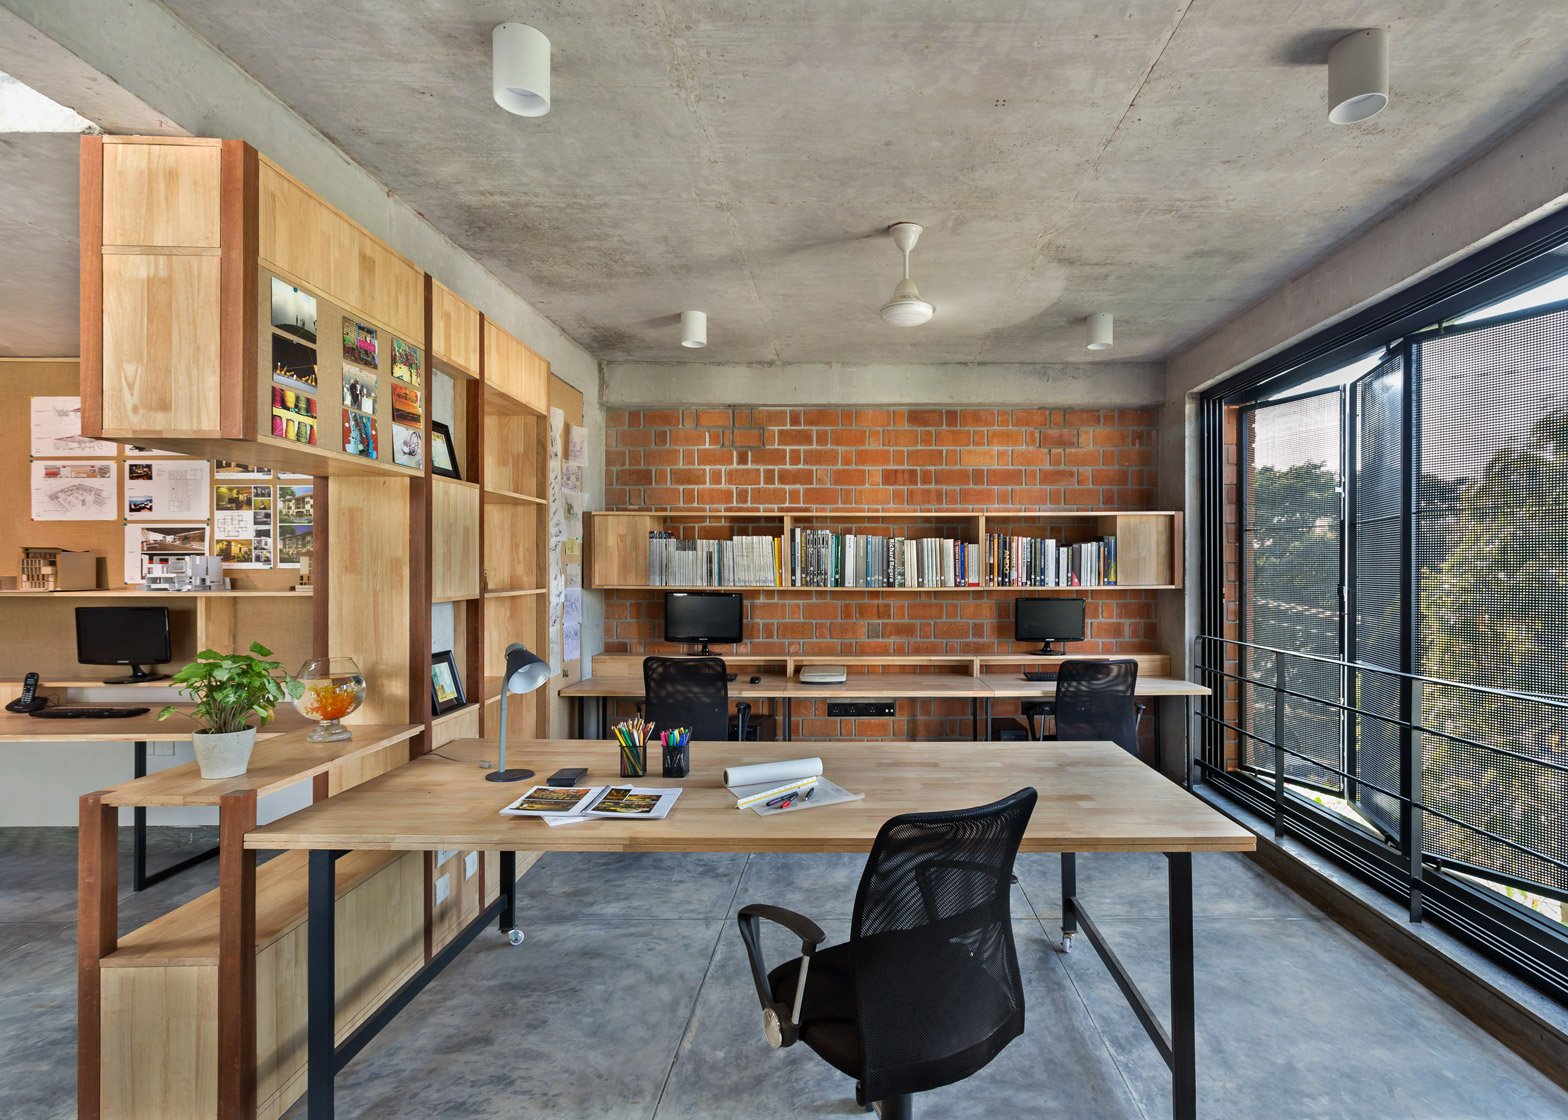 Lovely ... Architects Home Studio Betweenspaces Bangalore_dezeen_1568_0 Good Looking